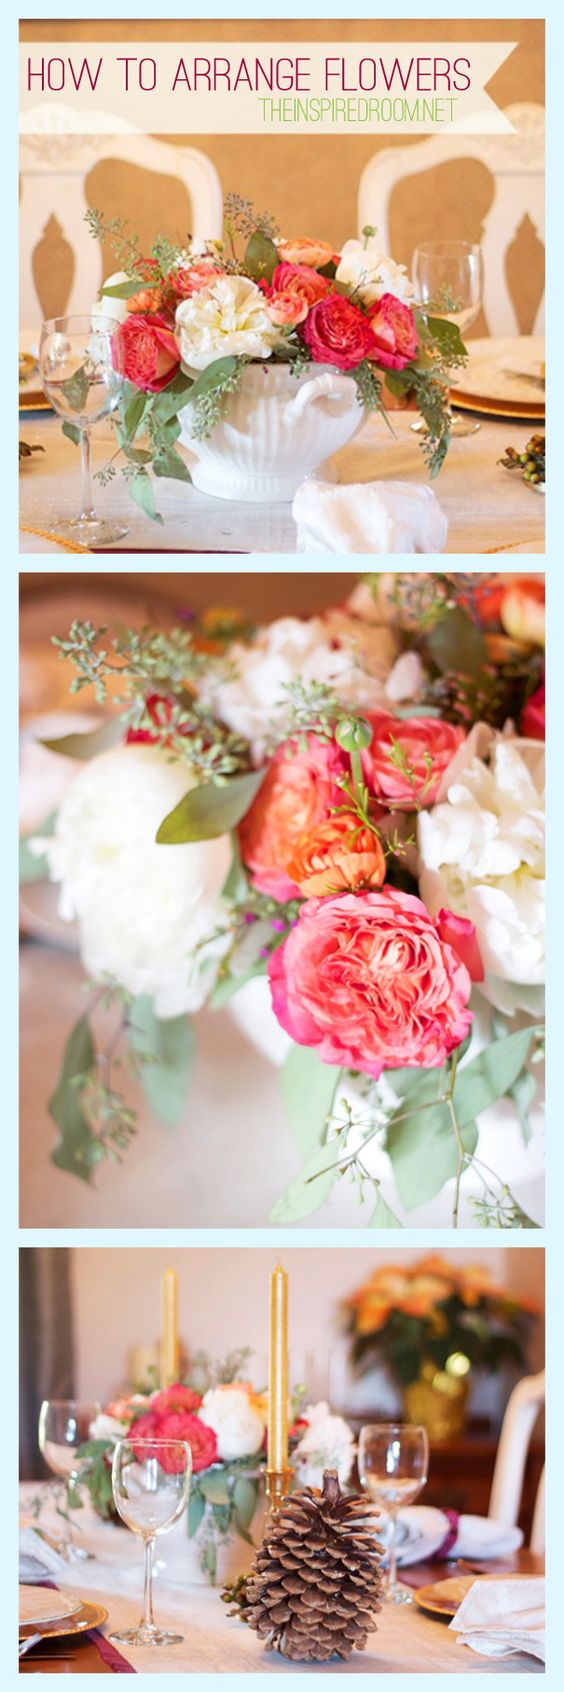 This Is A Brilliant Tip How To Arrange Flowers Tips And Easy Video